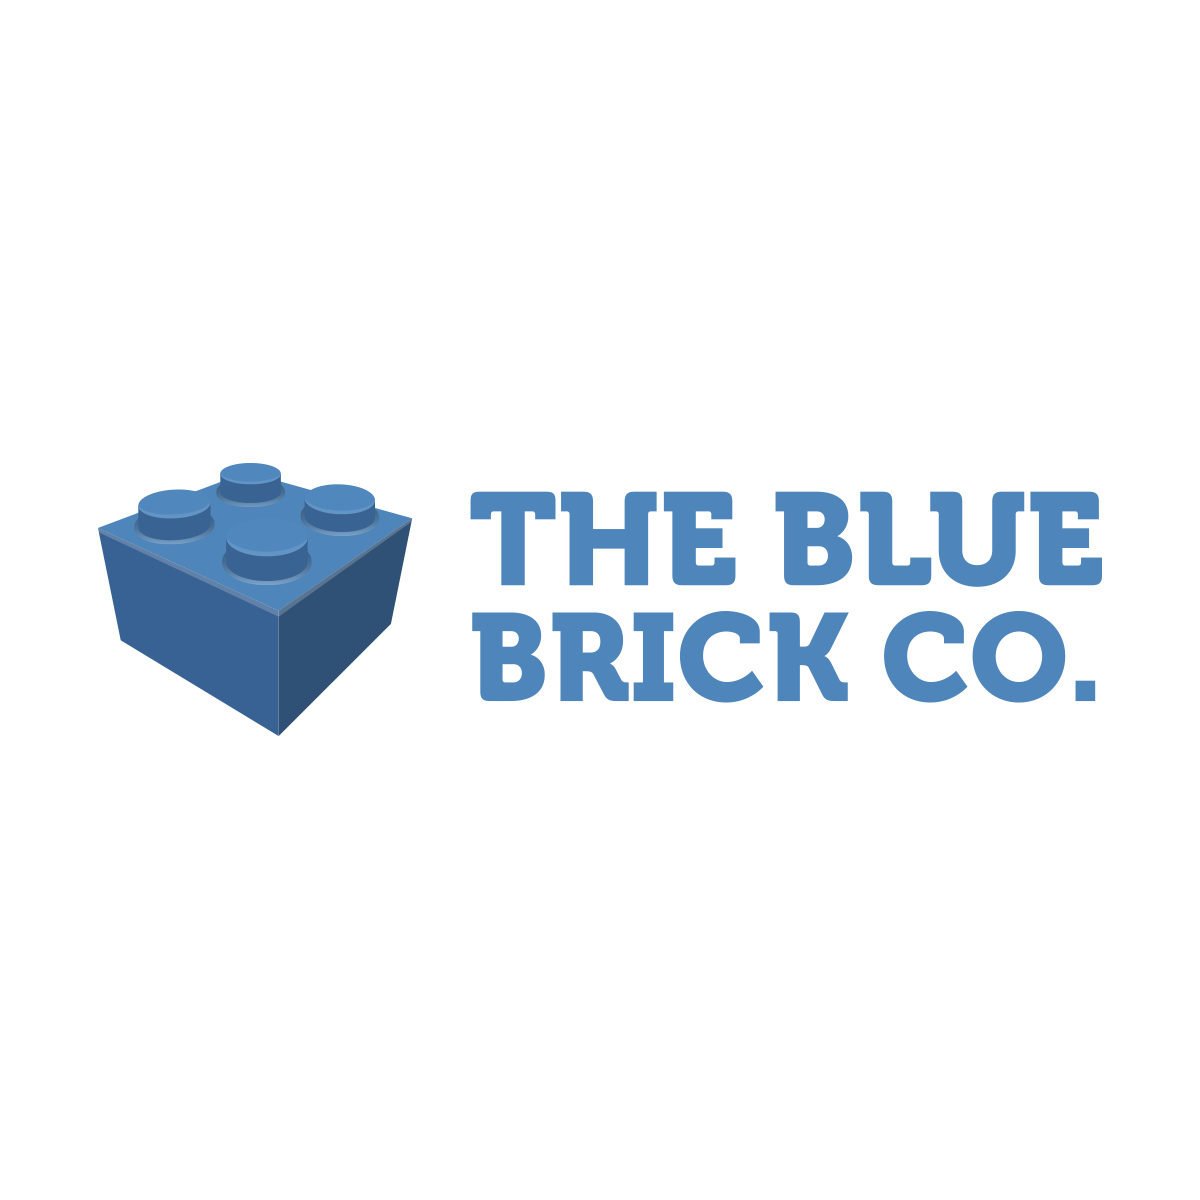 The Blue Brick Company